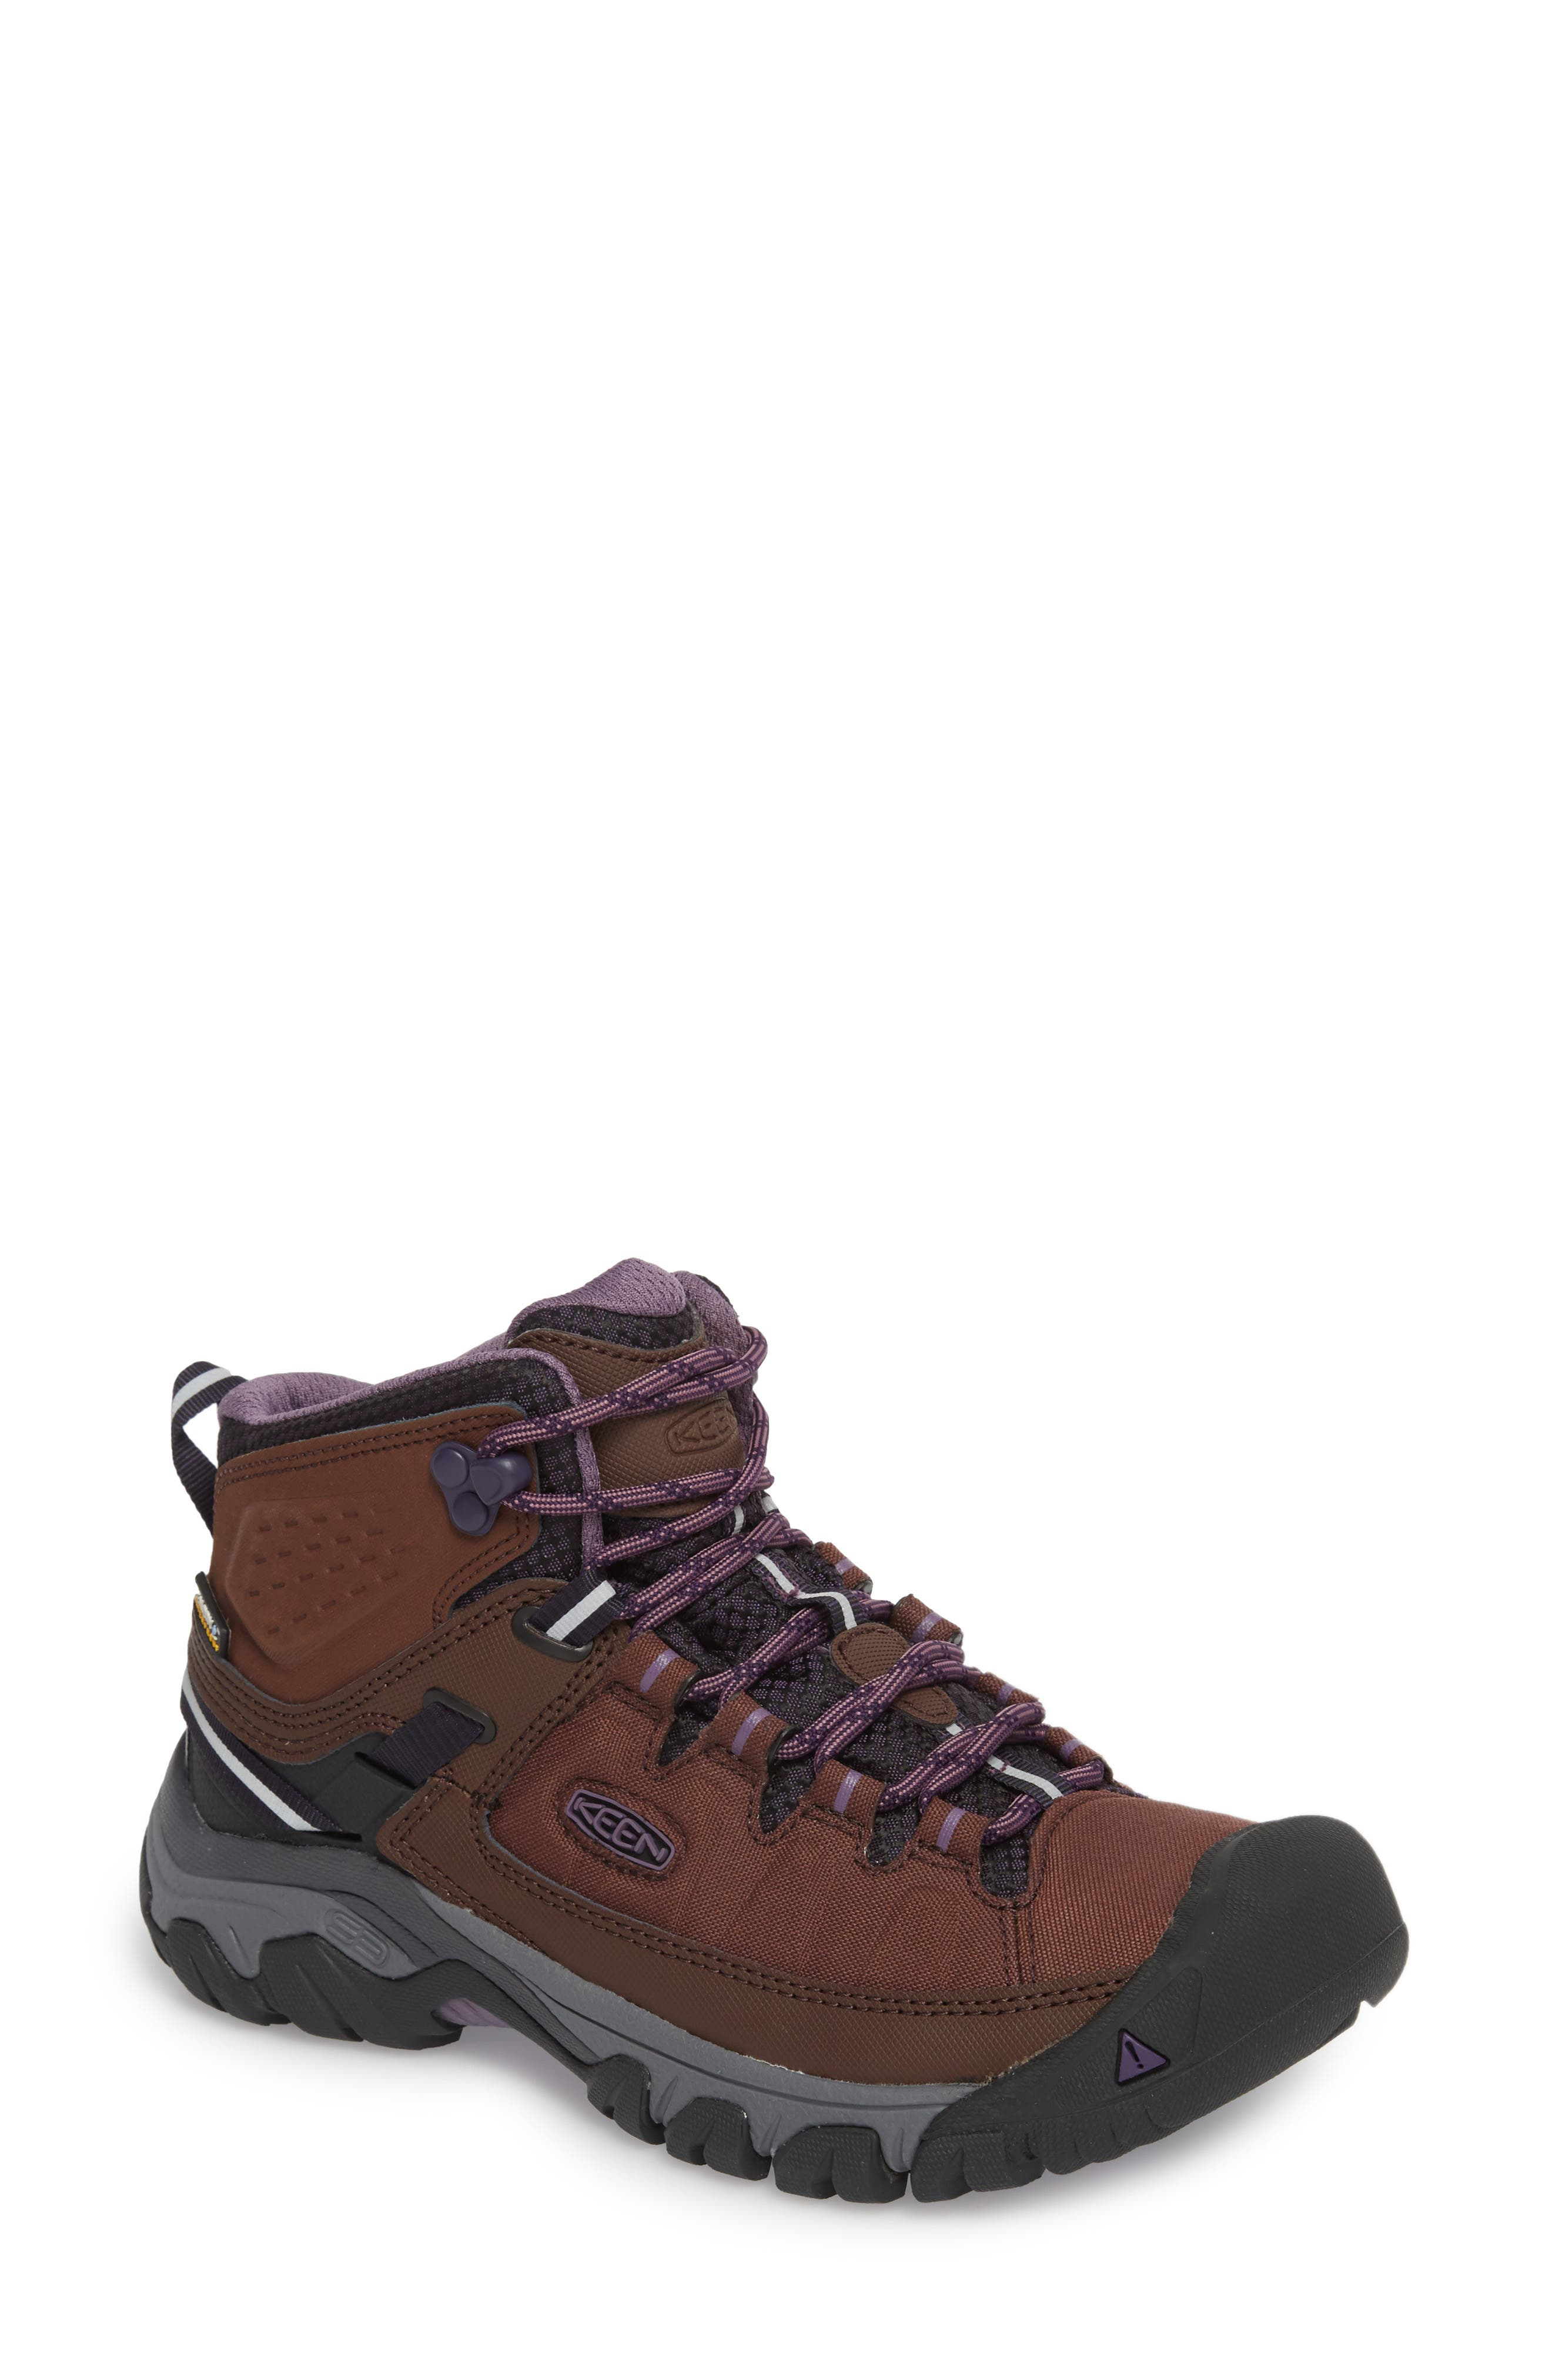 Targhee EXP Mid Waterproof Hiking Shoe,                             Main thumbnail 1, color,                             French Roast/ Purple Plumeria